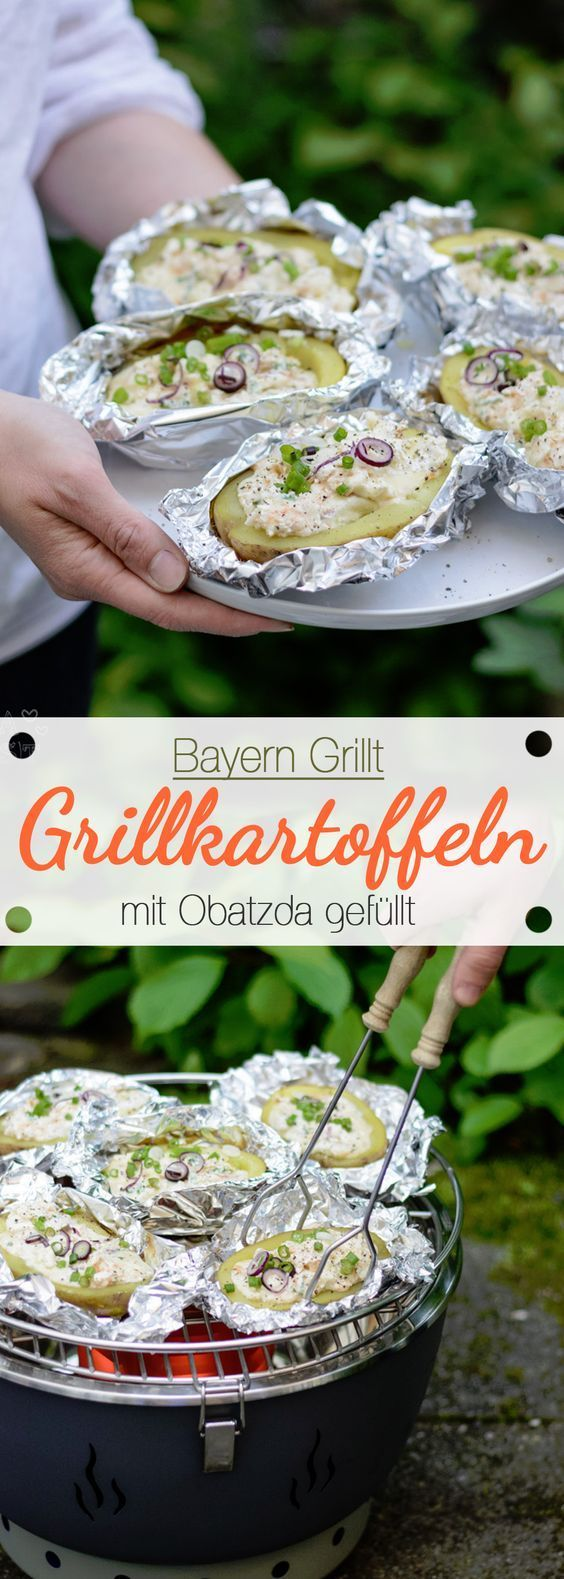 Photo of Bayern grills: grilled potatoes filled with Obatzda – Ina Eats